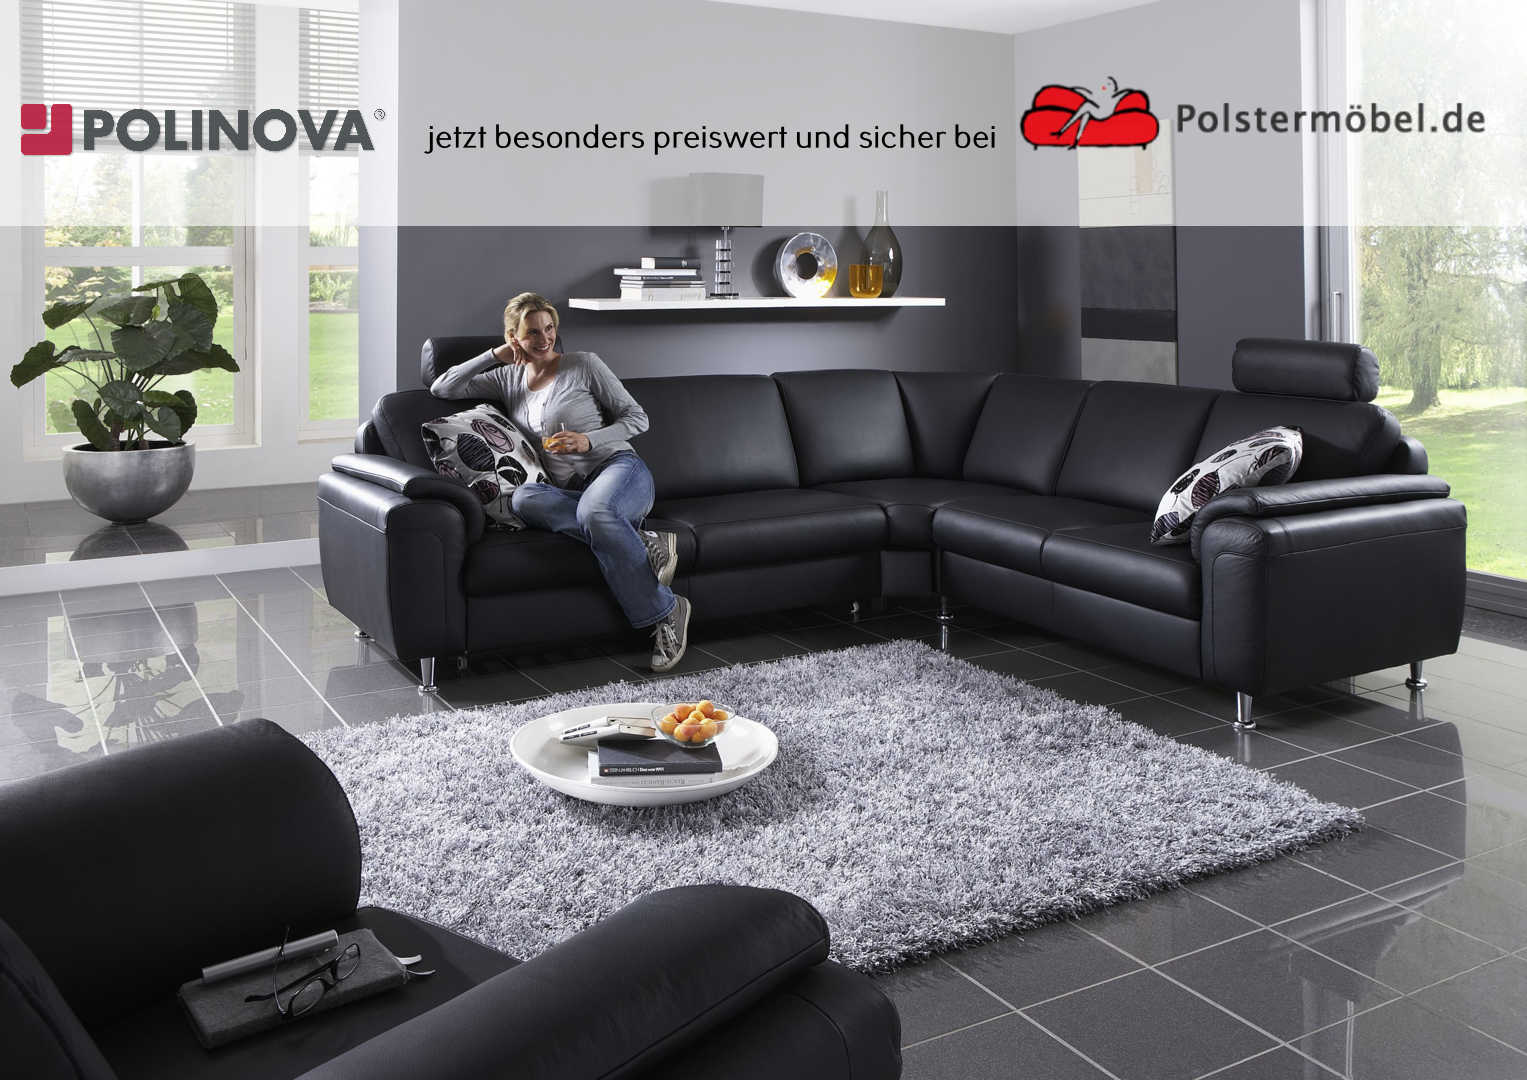 polinova sardinien polsterm. Black Bedroom Furniture Sets. Home Design Ideas